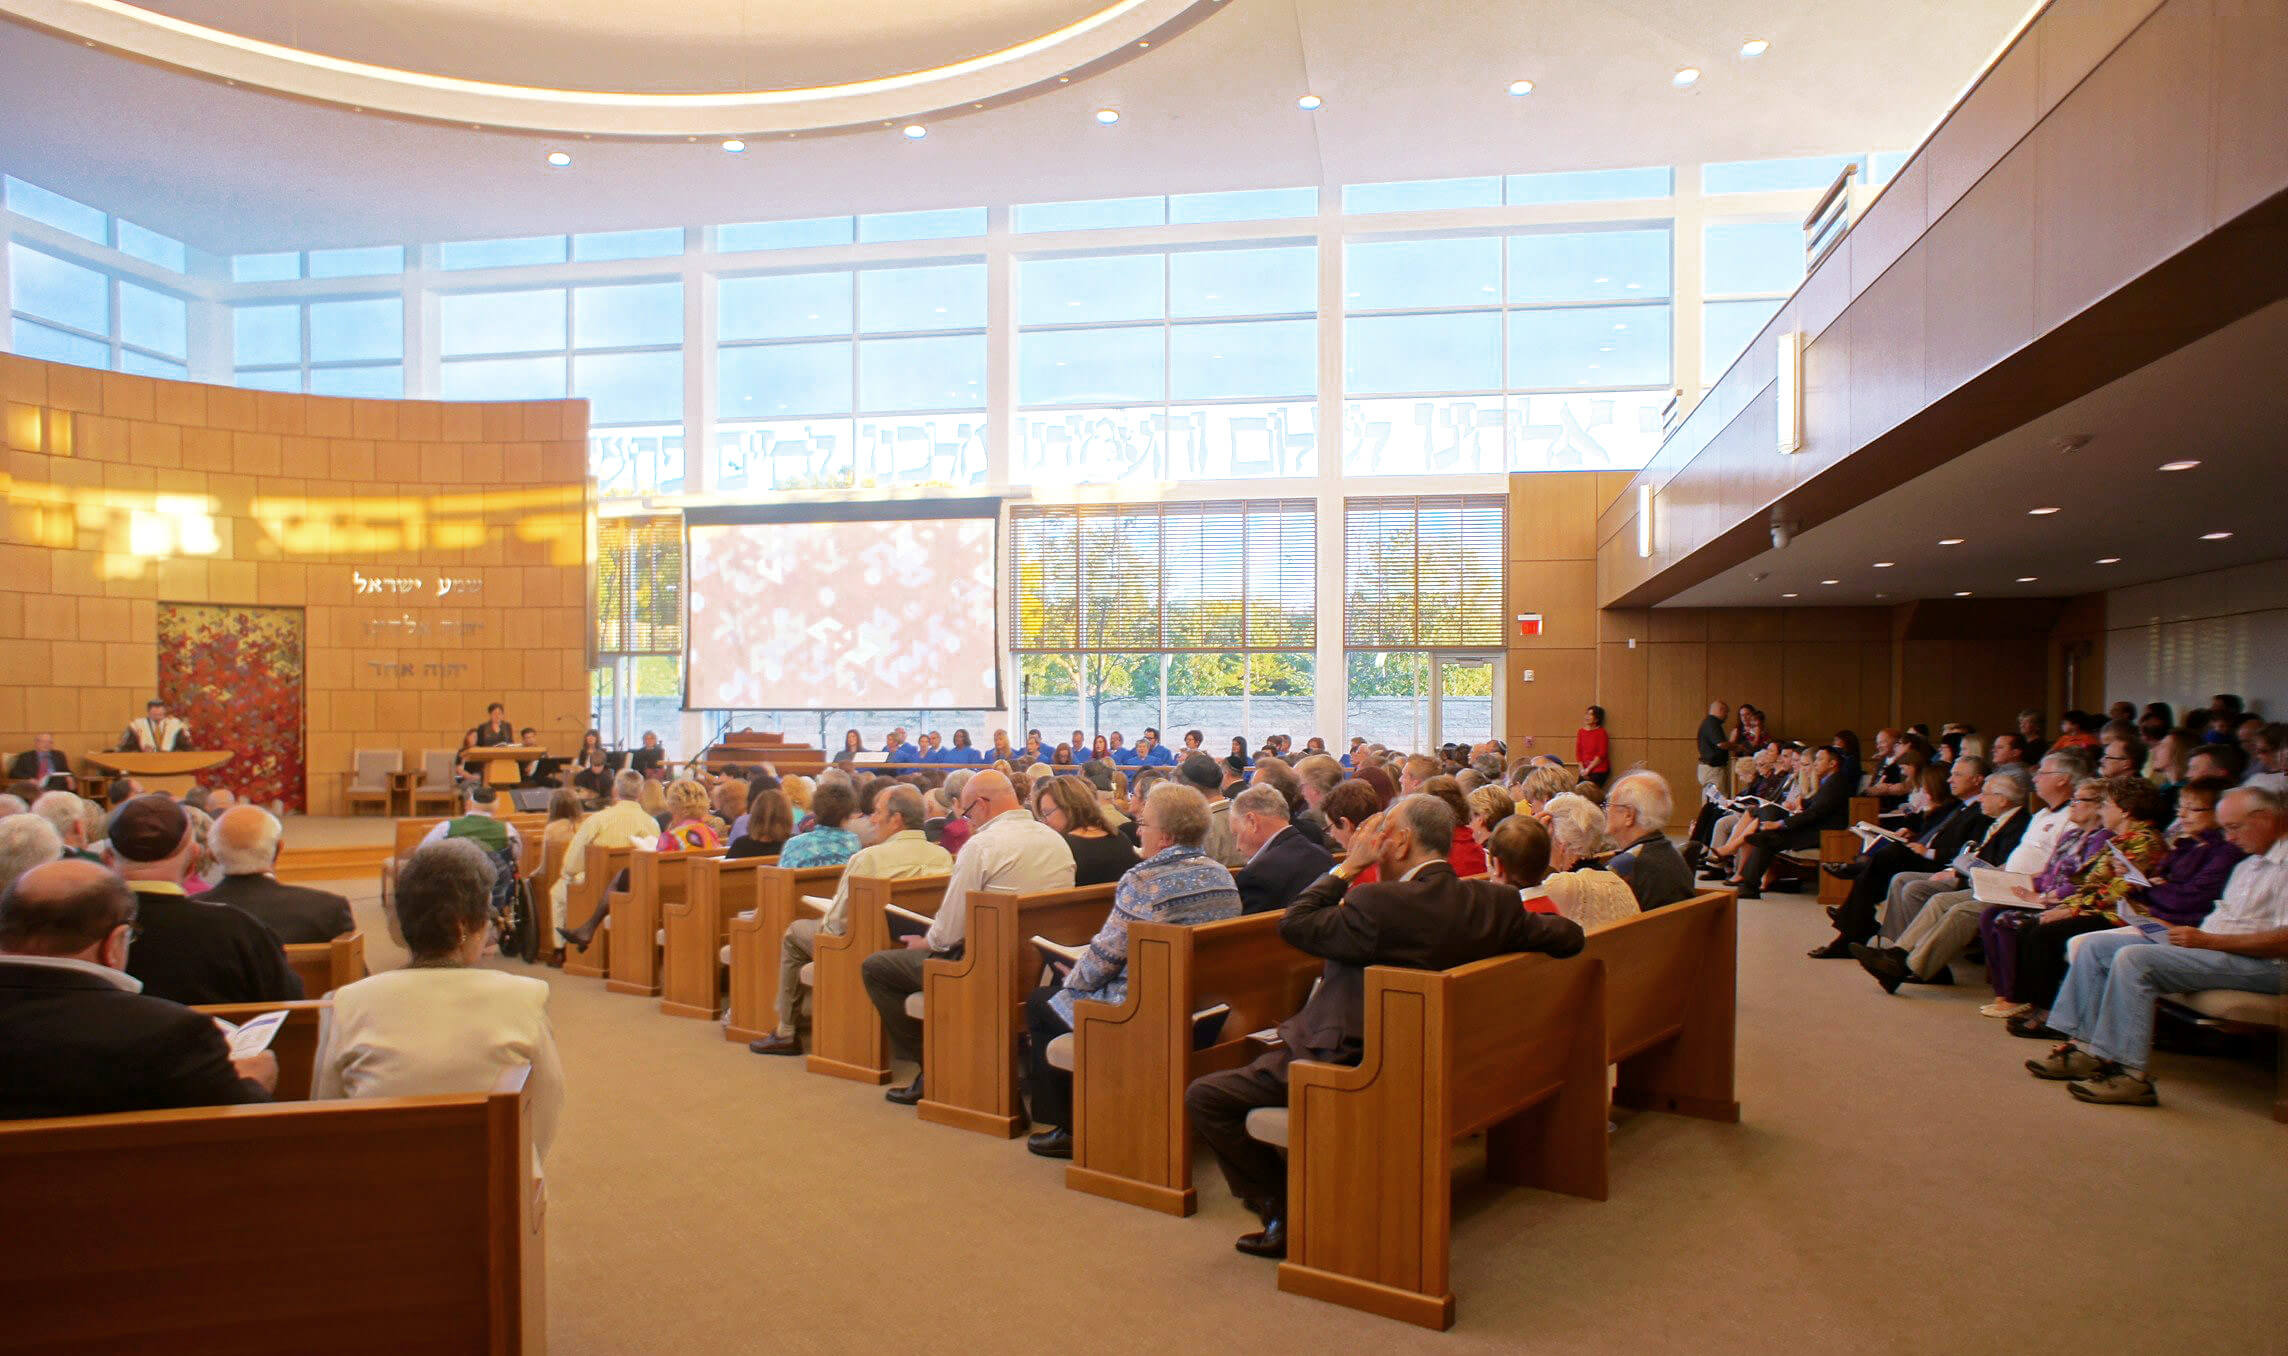 The congregation gathered at the Temple Israel sanctuary.